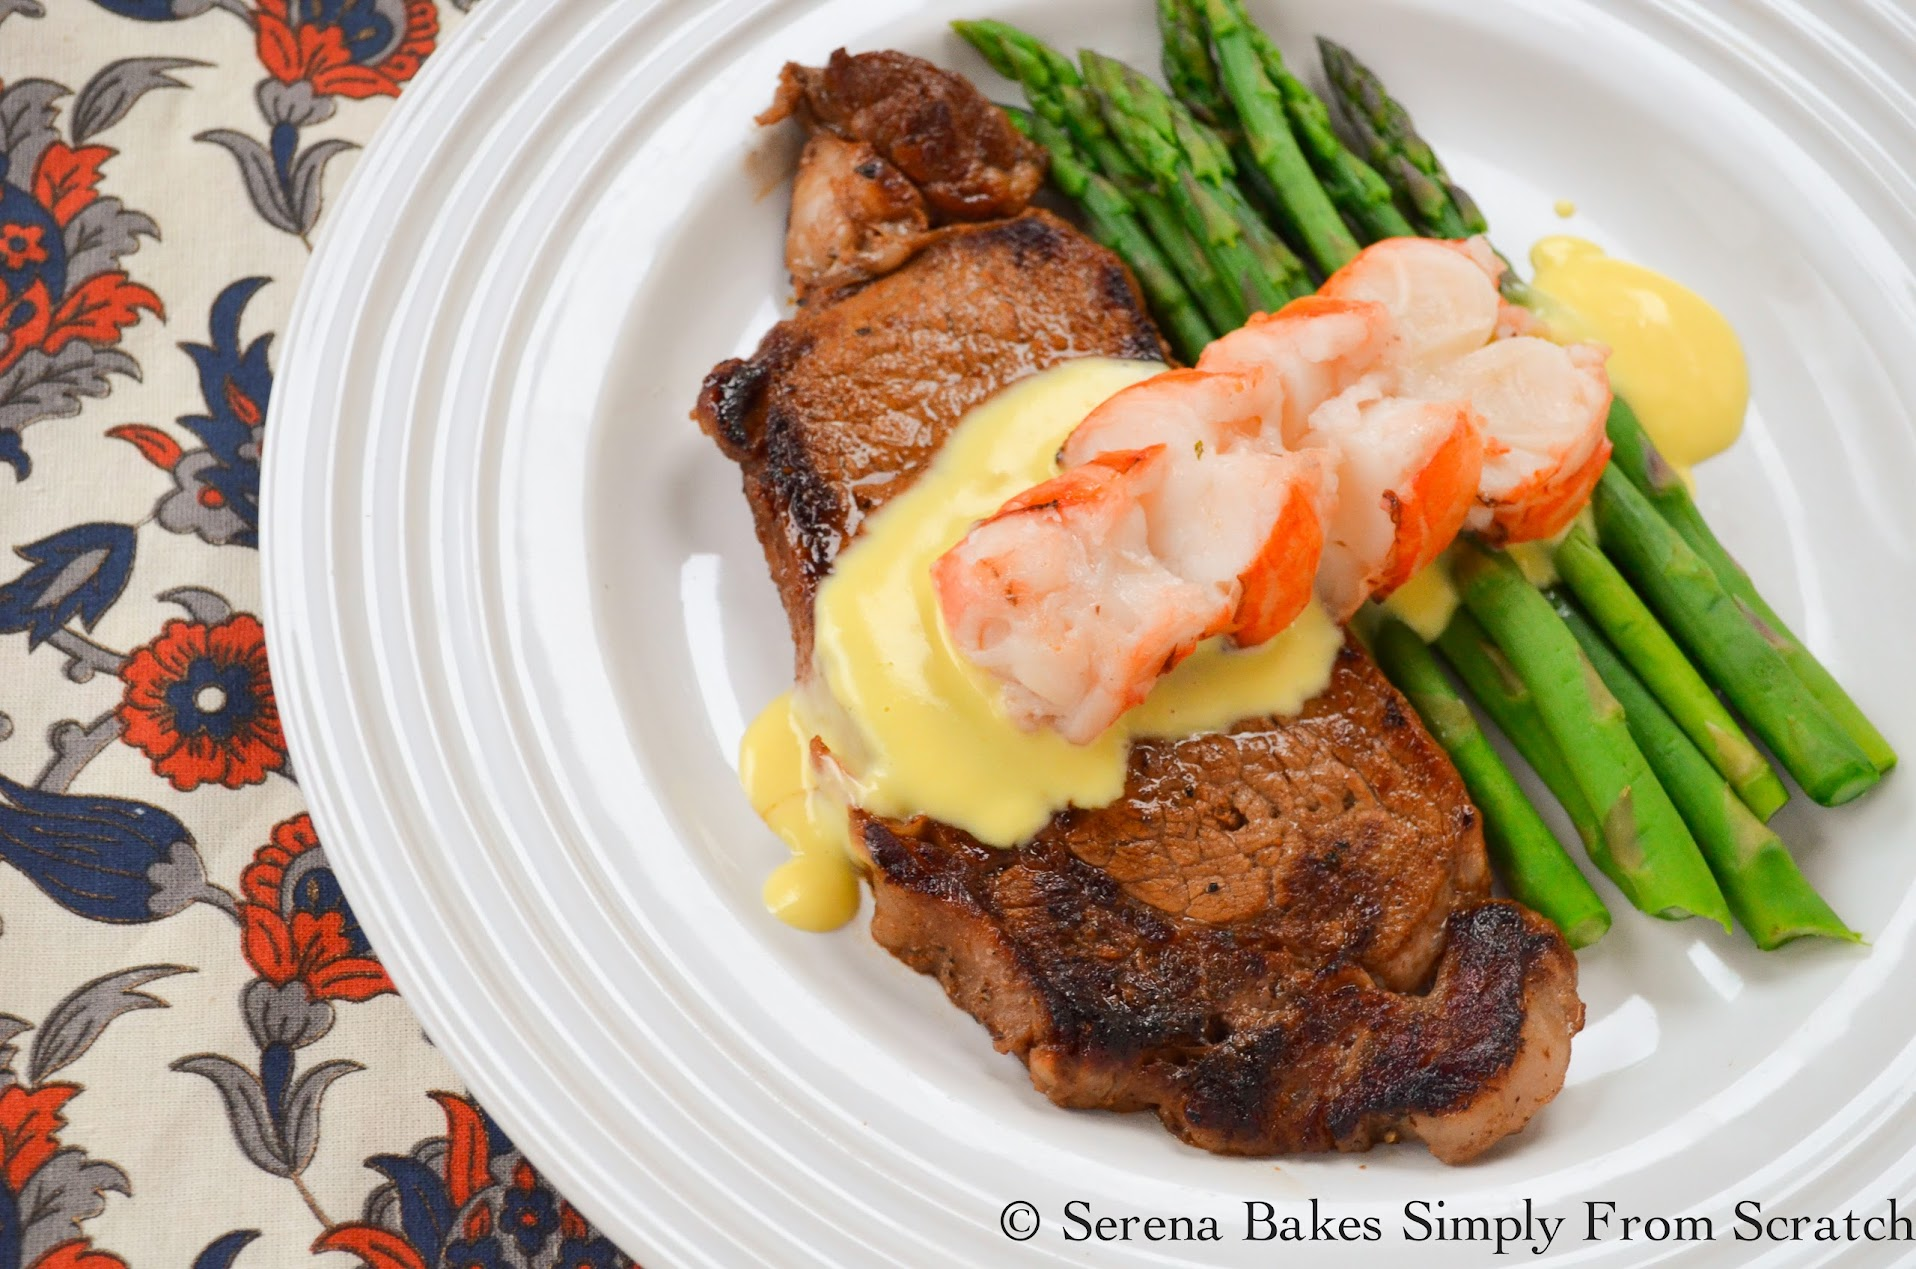 Perfectly Pan Seared Steak With Hollandaise Sauce and Lobster Tail served with a side of asparagus.